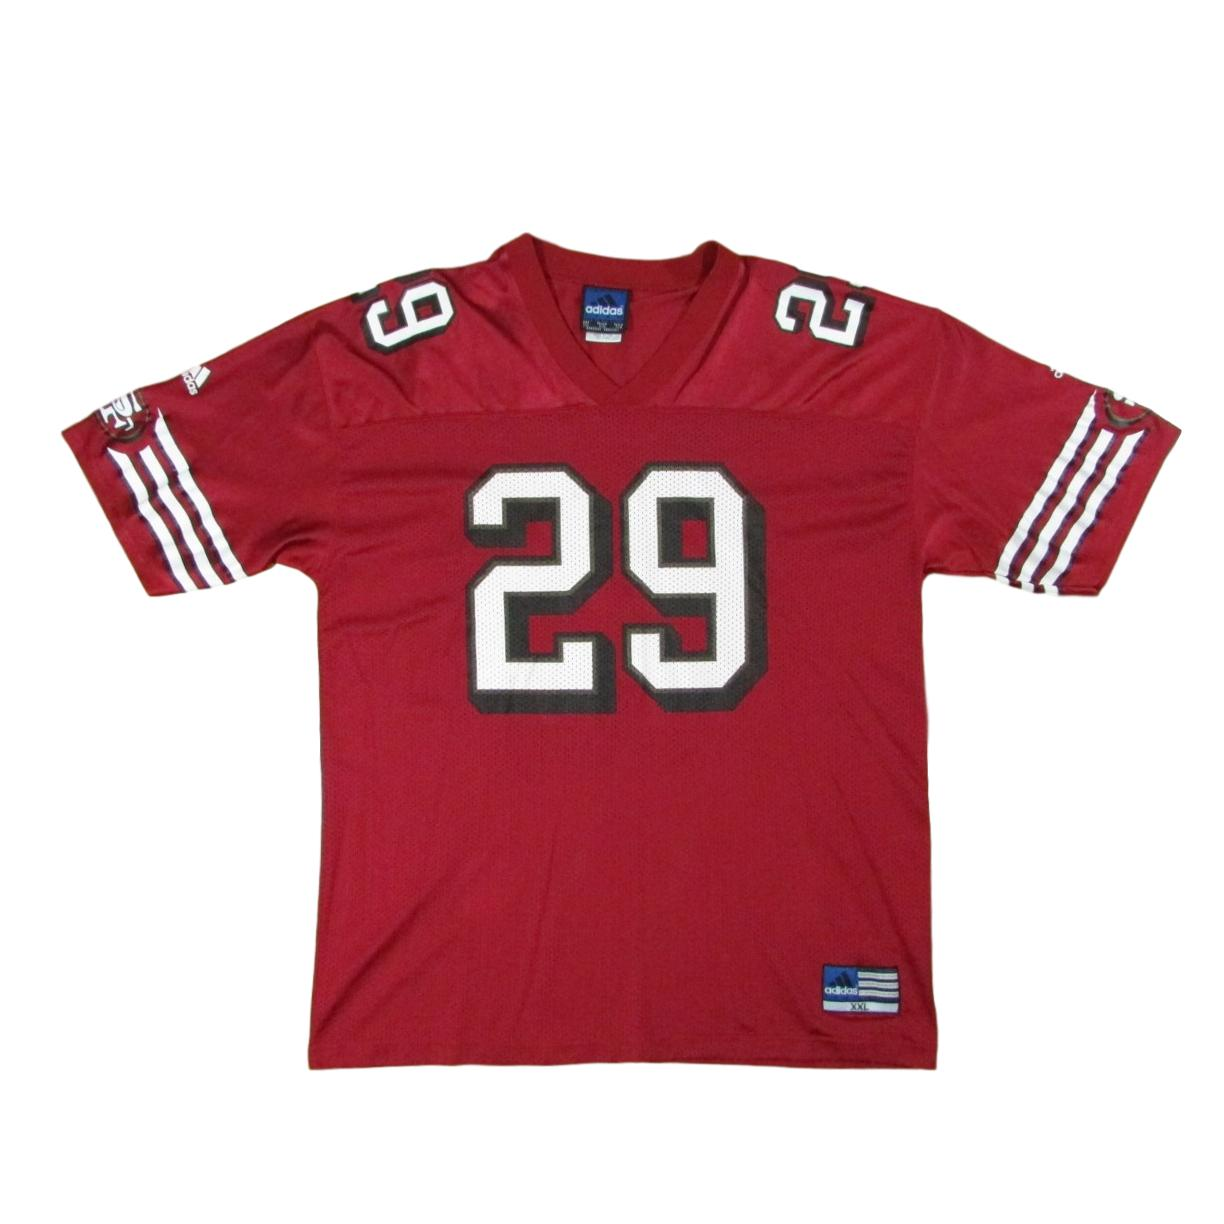 San Francisco 49ers Ahmed Plummer Adidas Football Jersey Sz XXL